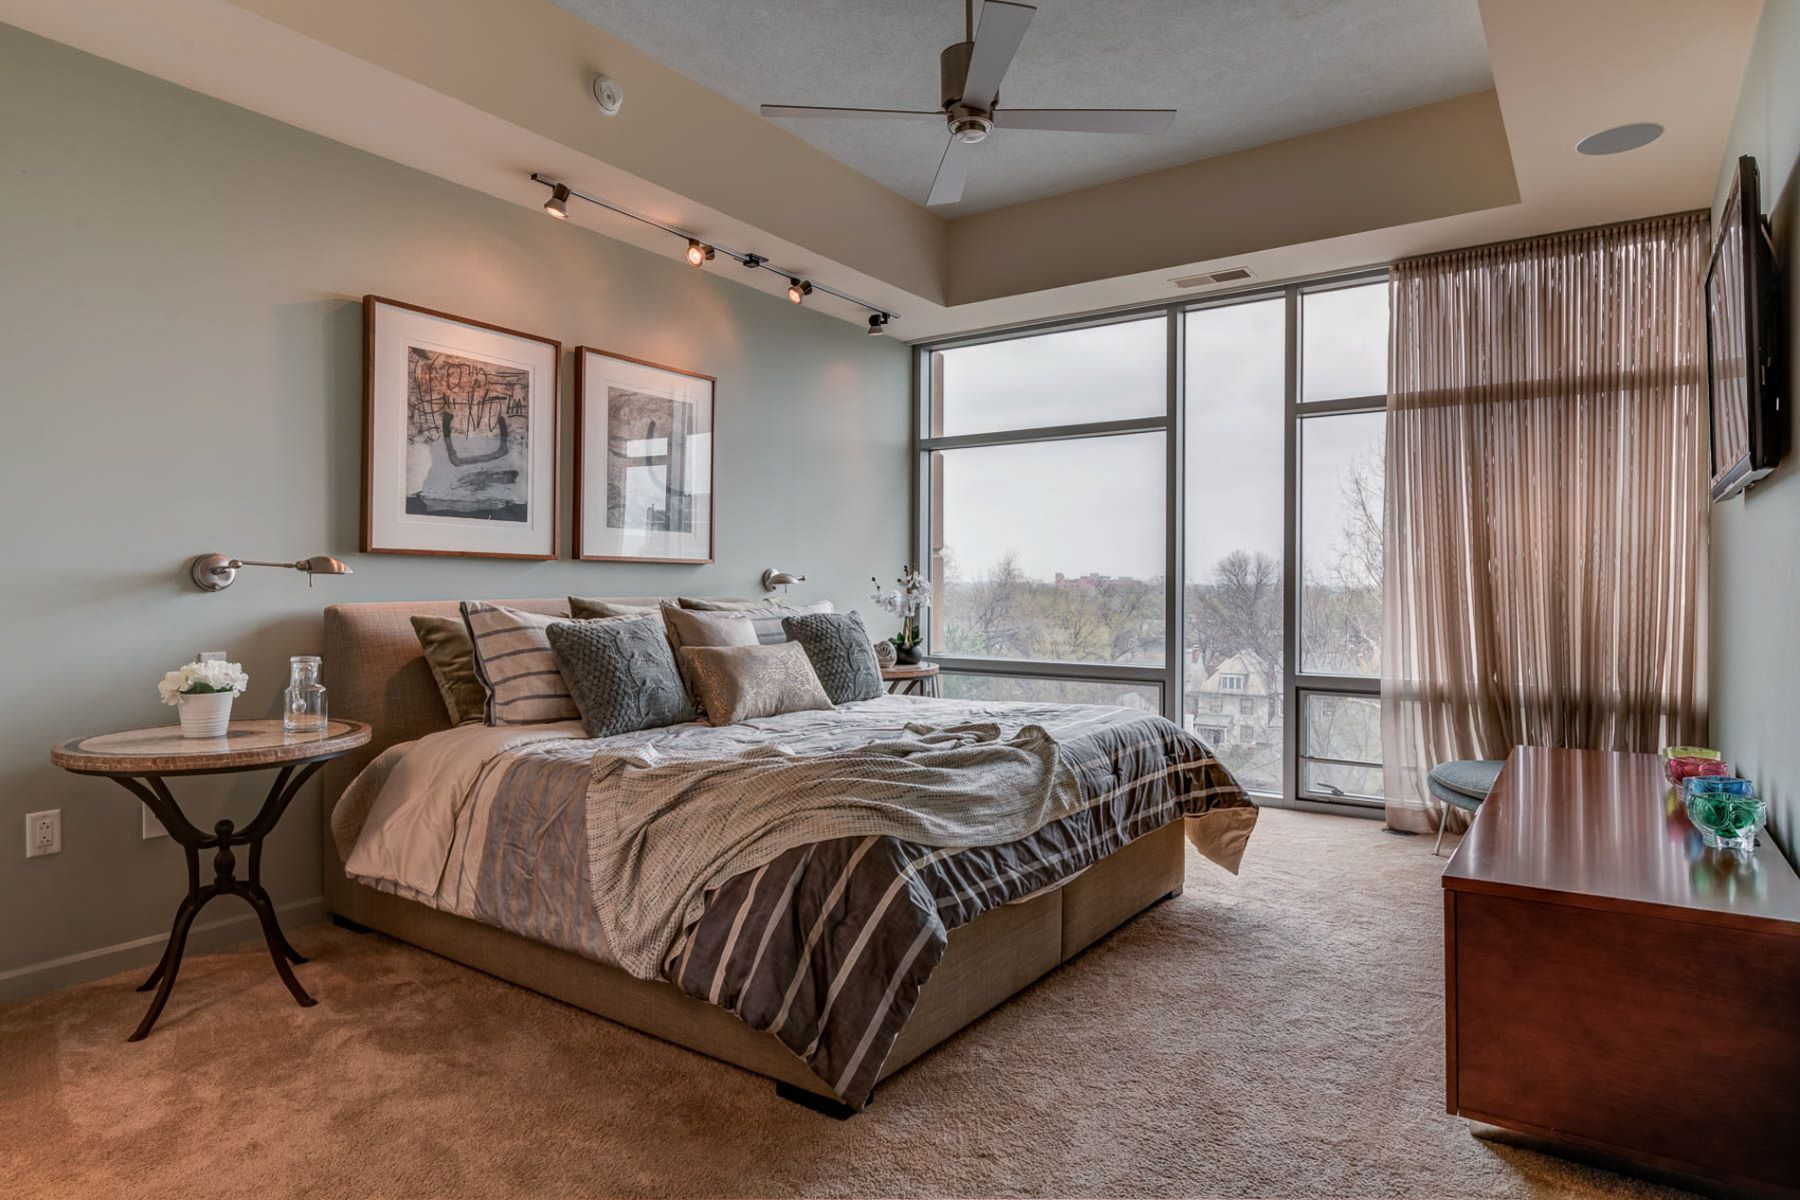 Additional photo for property listing at Lindell Blvd 4545 Lindell Blvd # 23 St. Louis, Missouri 63108 United States